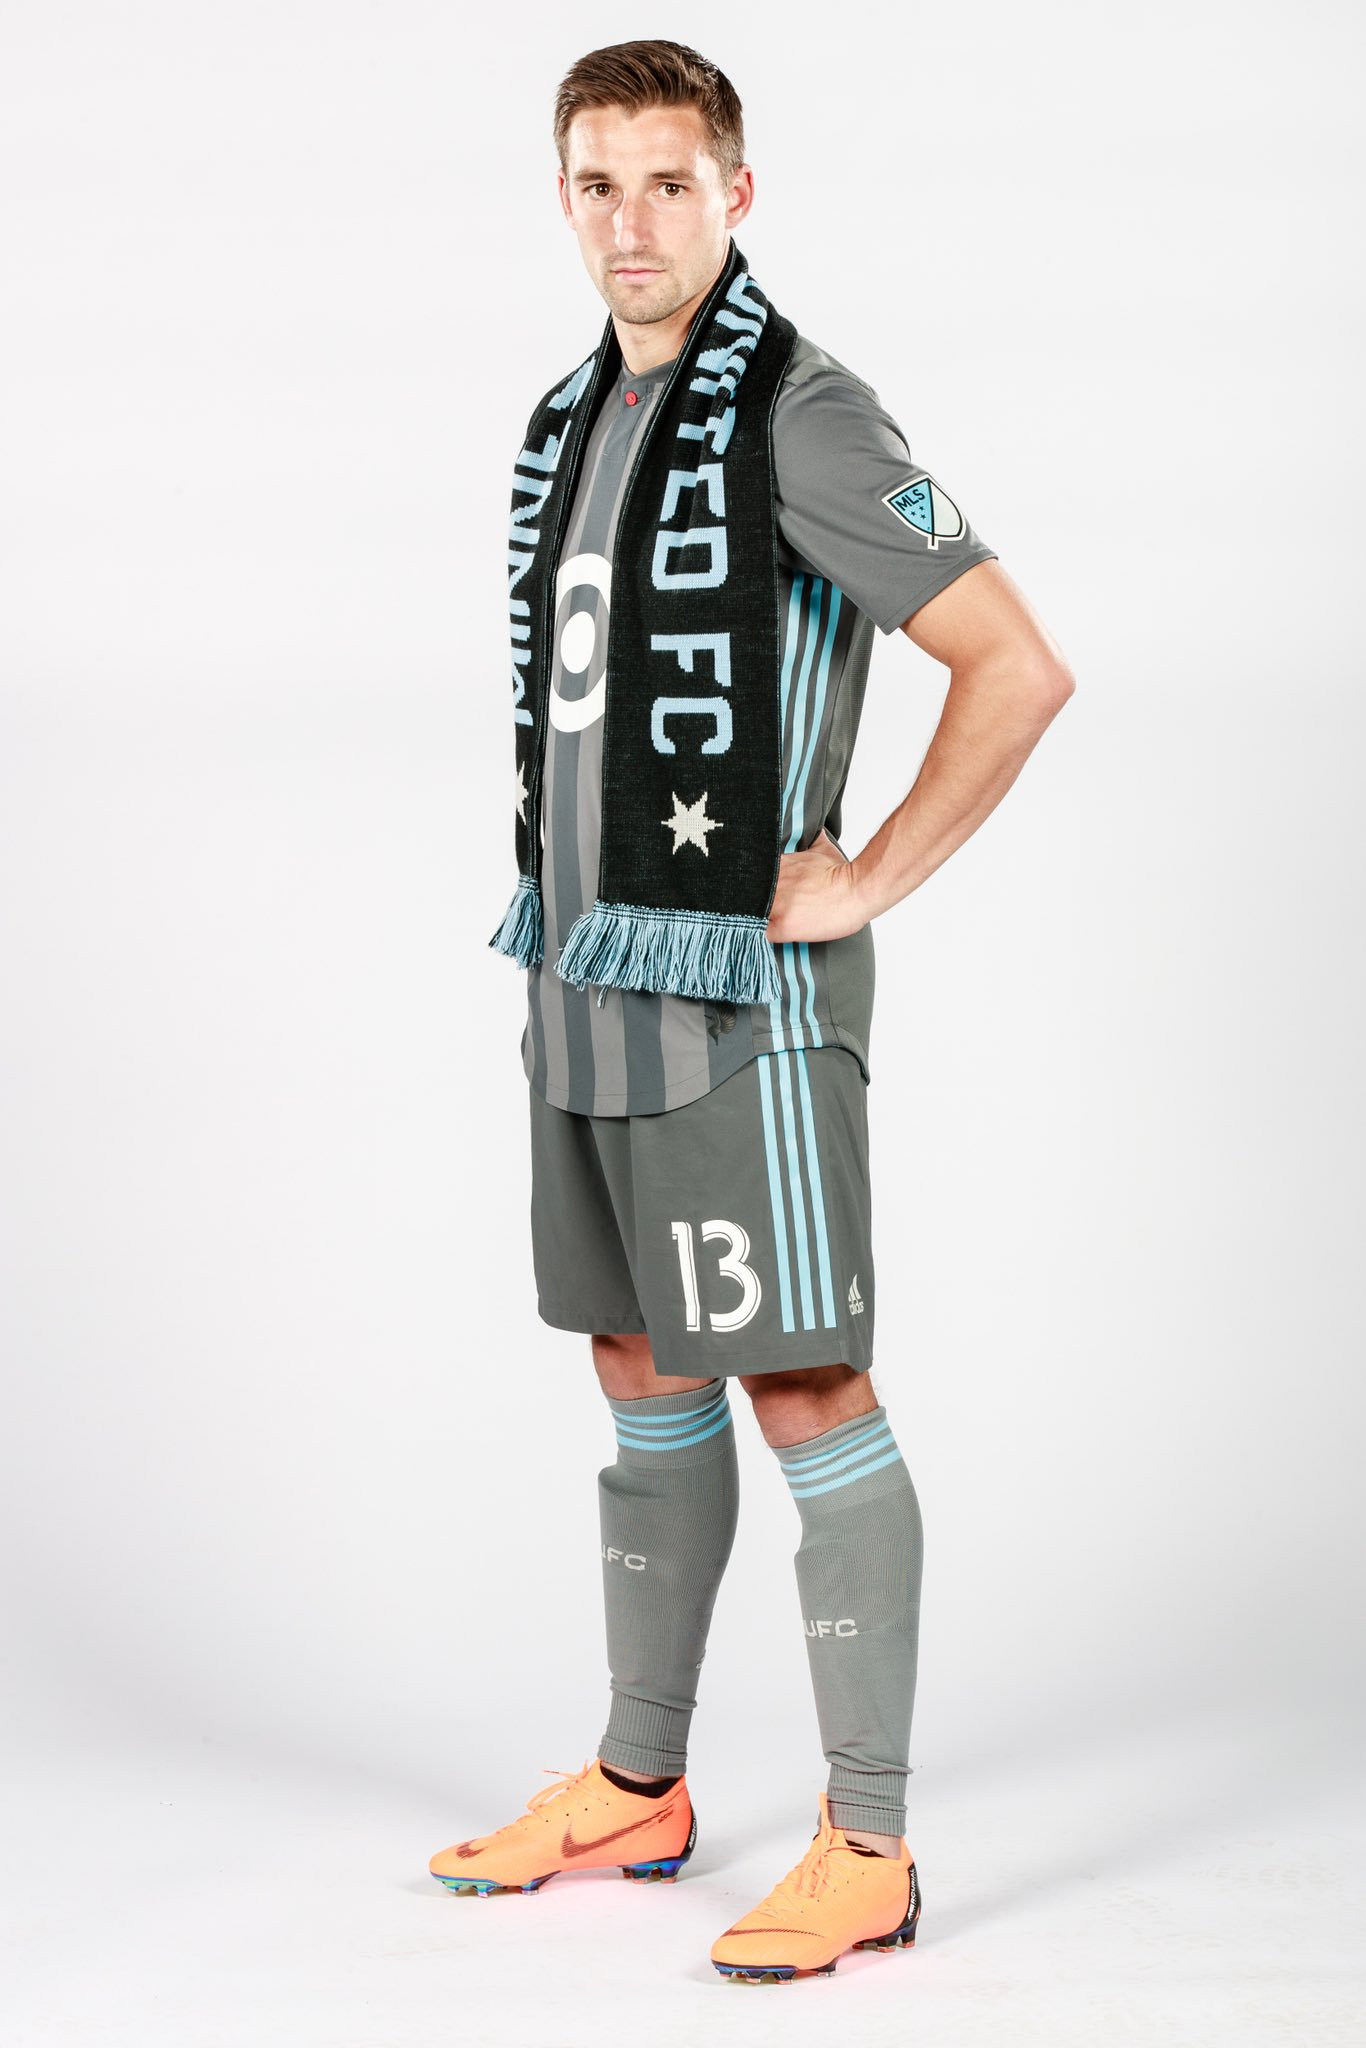 Finlay during the 2018 preseason, Photo Courtesy of Minnesota United